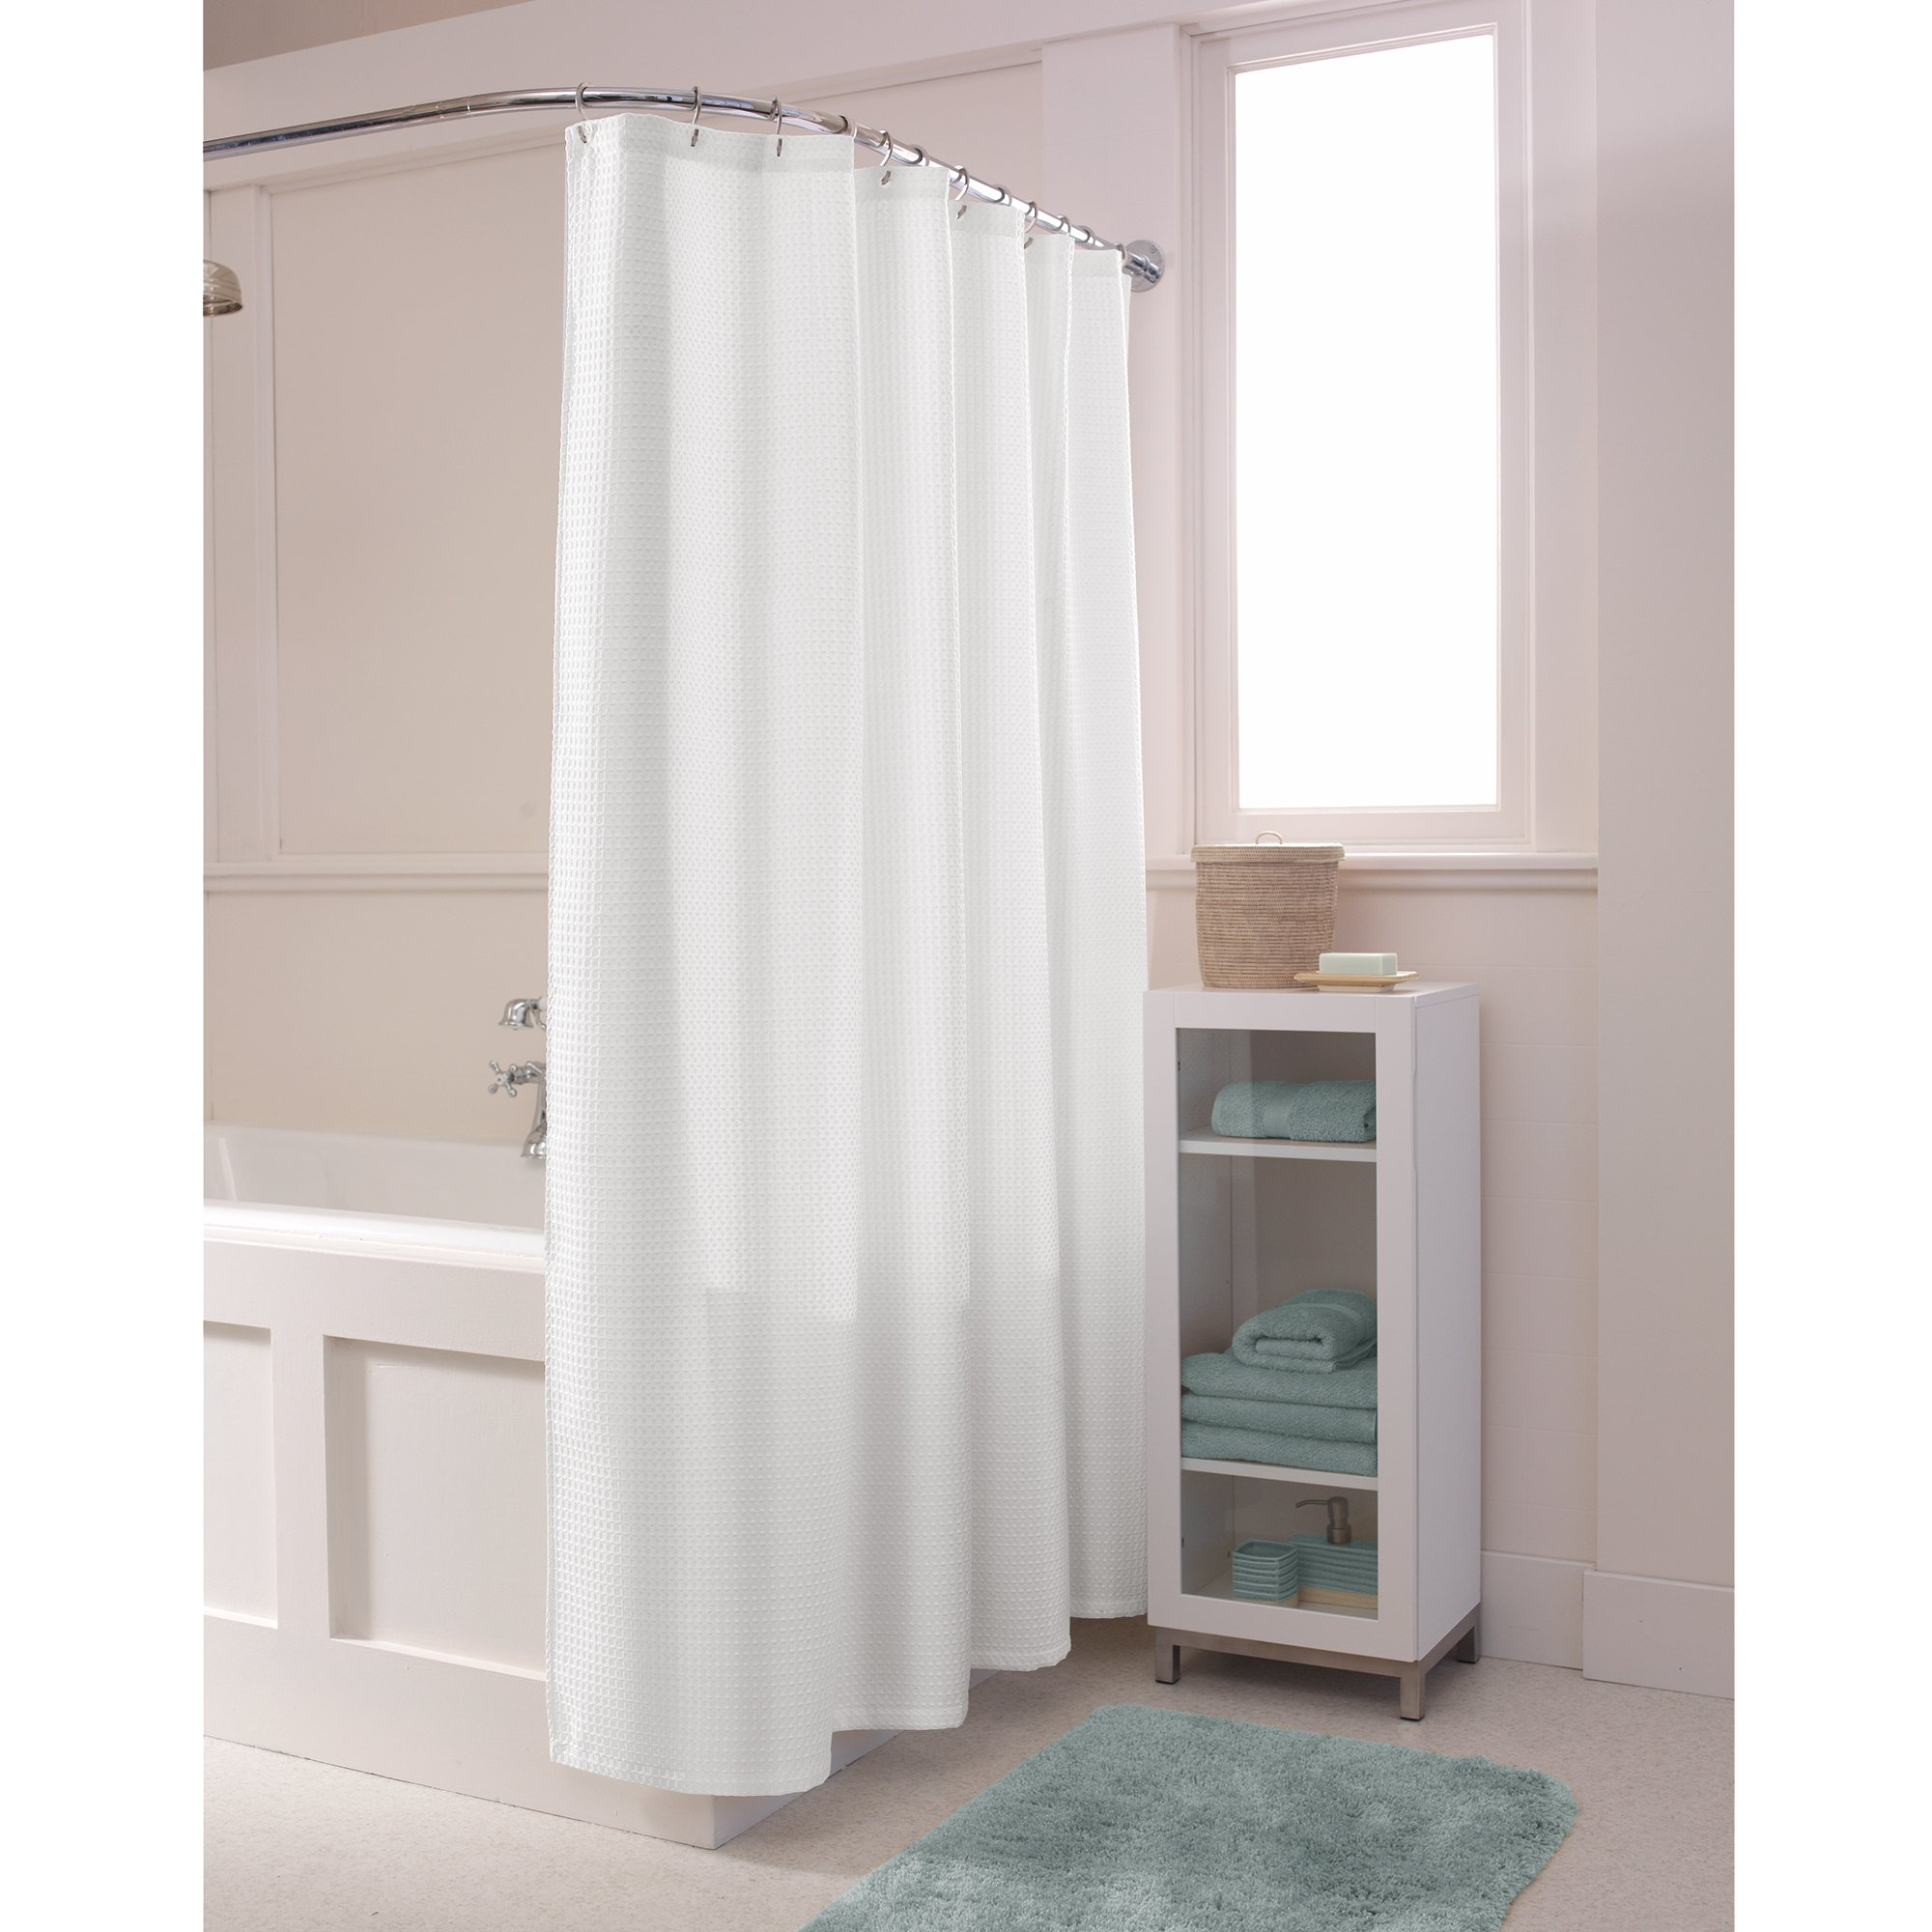 white fabric shower curtain. Black Bedroom Furniture Sets. Home Design Ideas